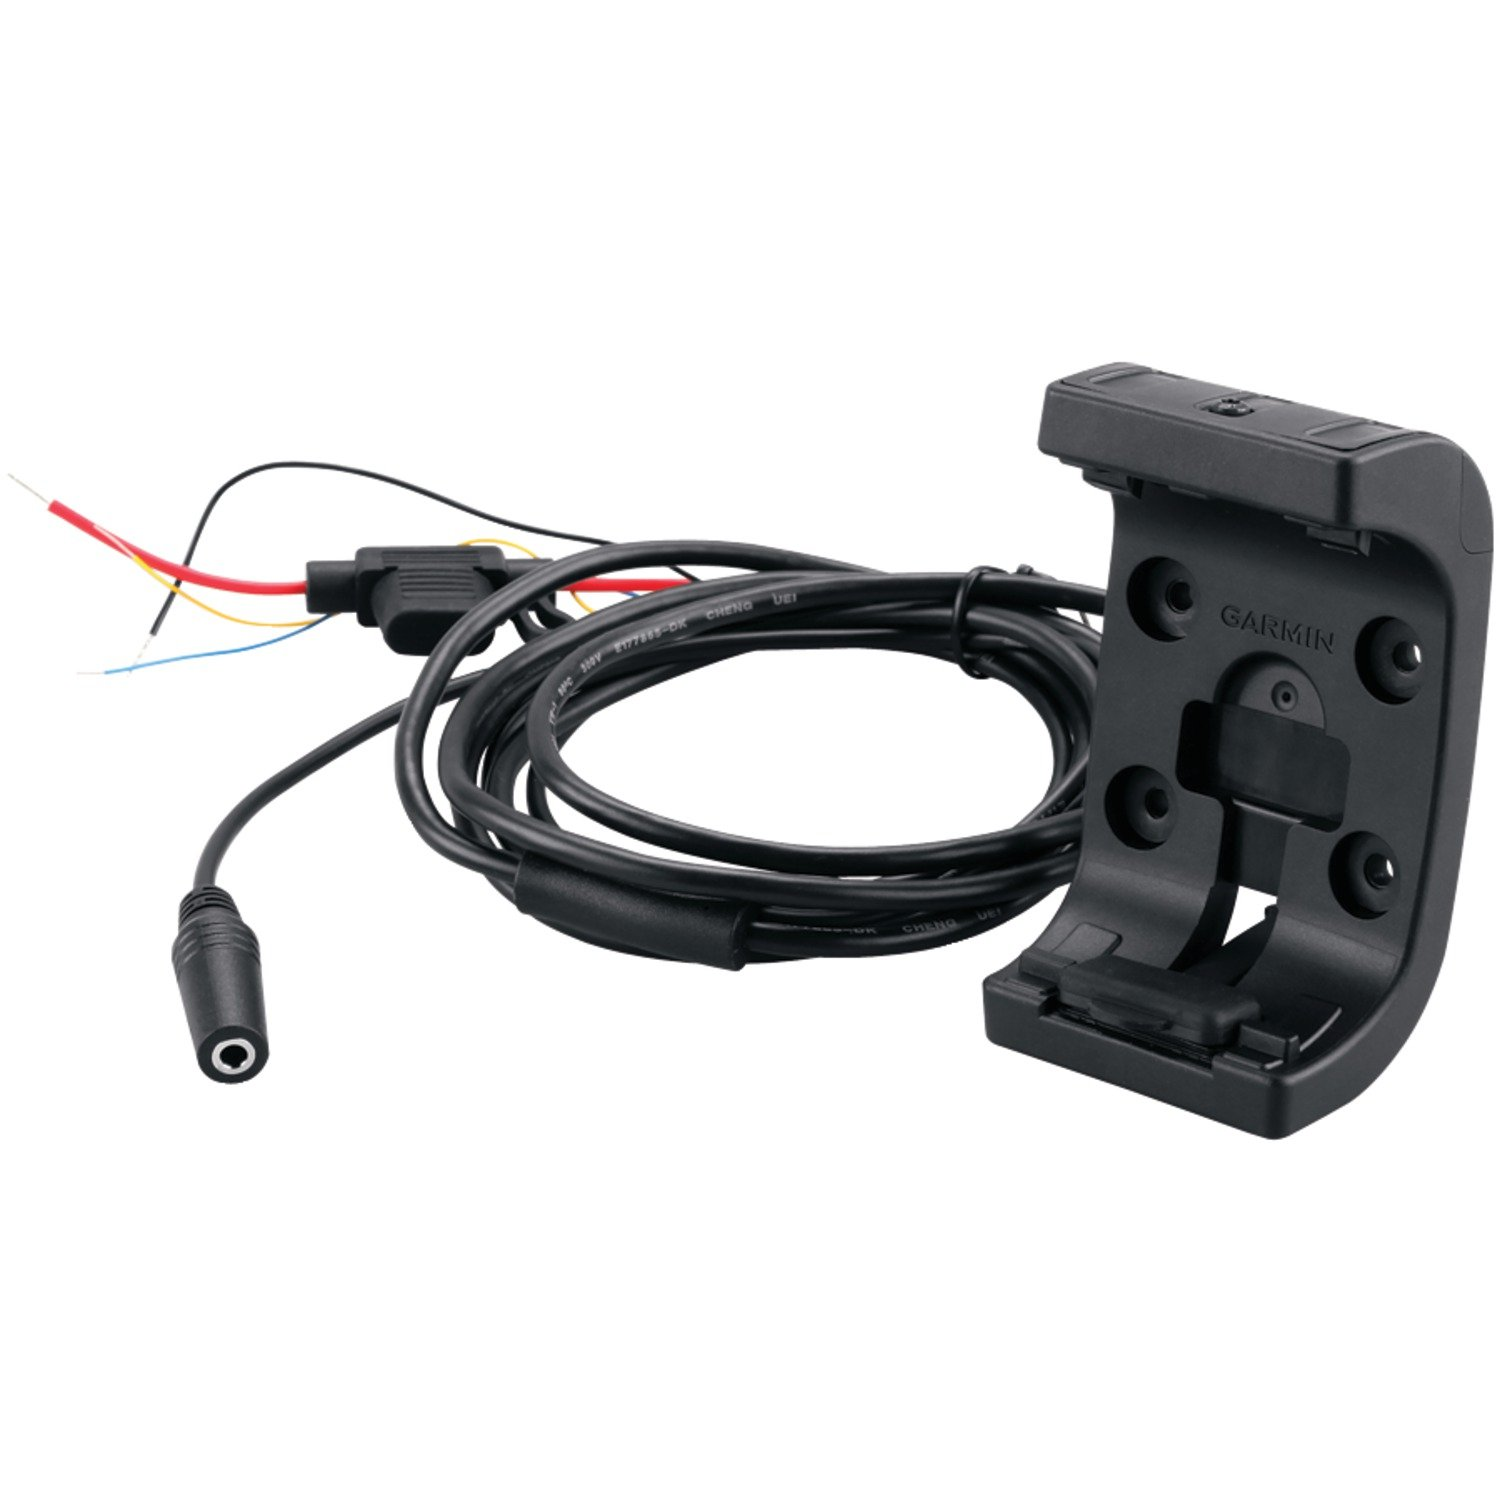 Amps Rugged Mount with aud.-power by Garmin